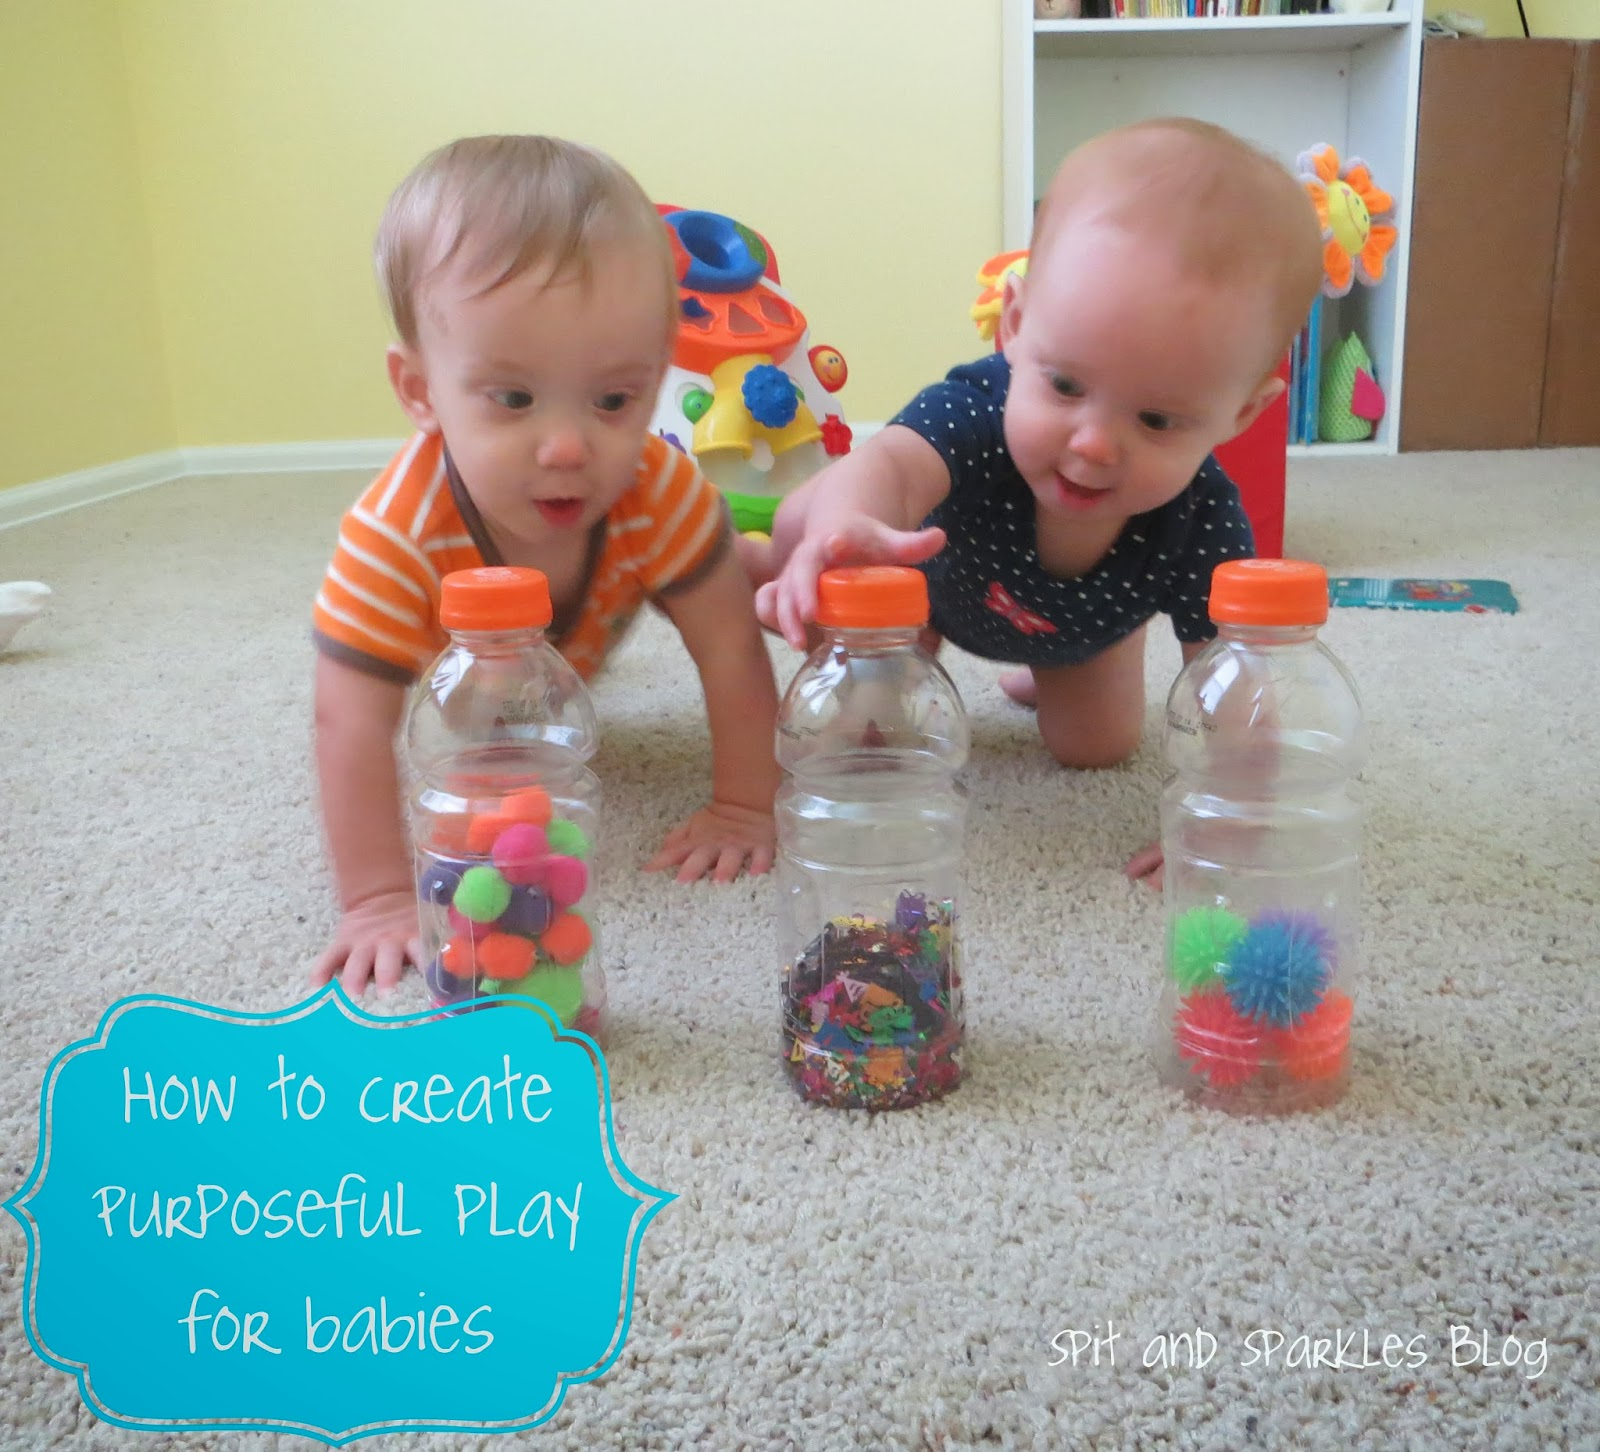 How to create purposeful play for babies #totschool #earlylearning #homeschool